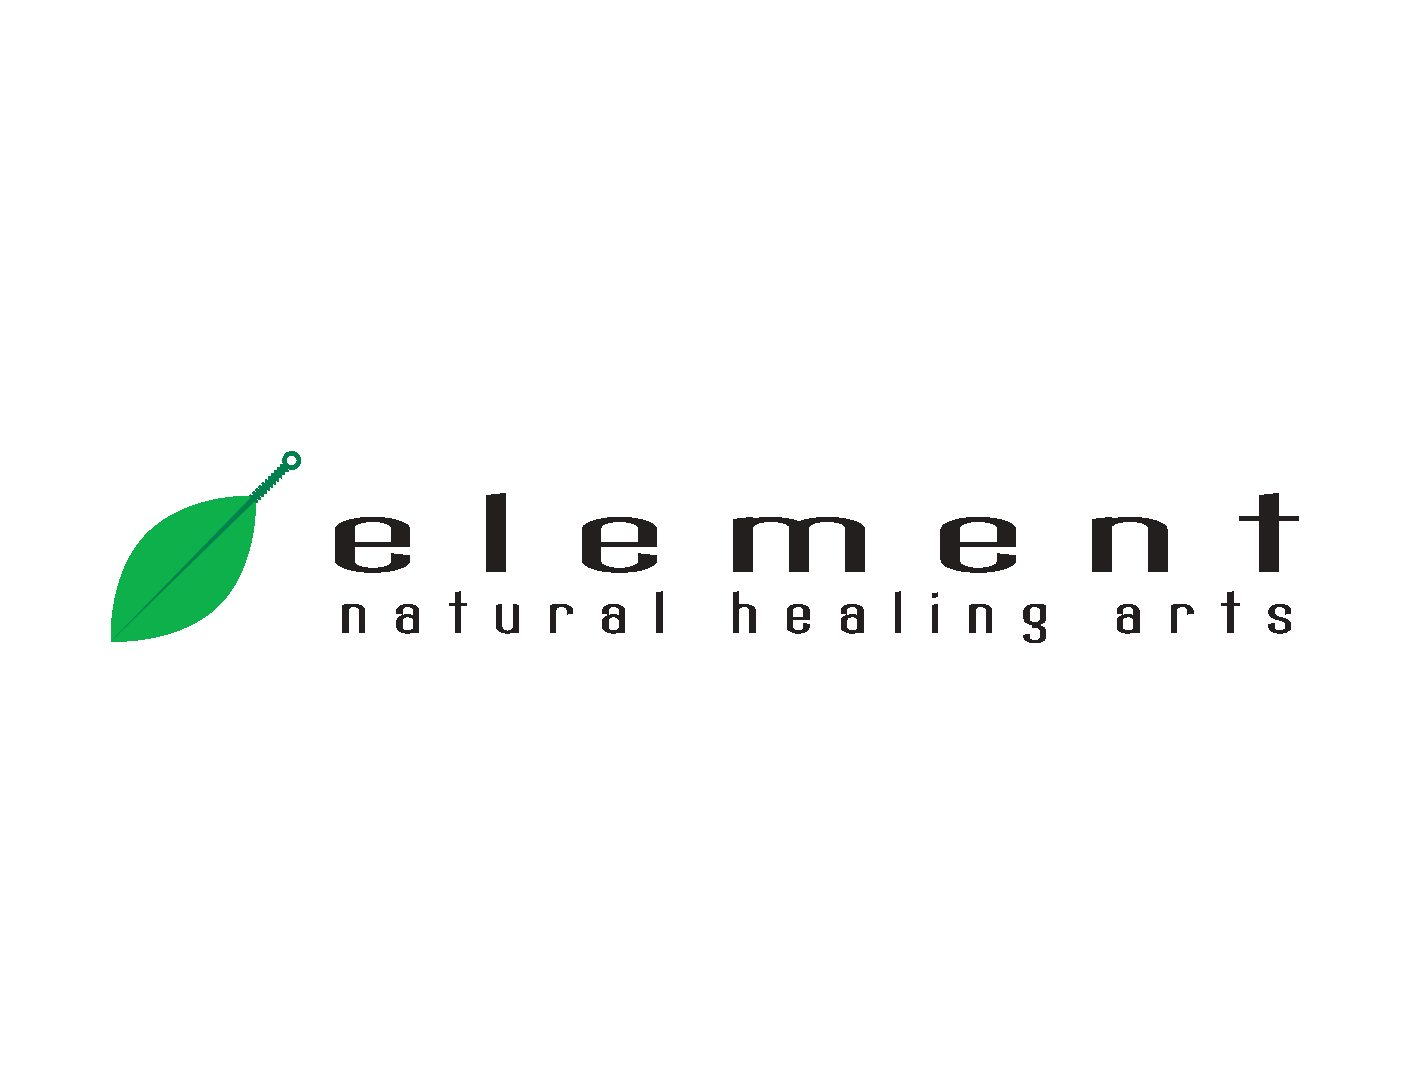 Acupuncture, Massage and Wellness Center located in Brooklyn, New York